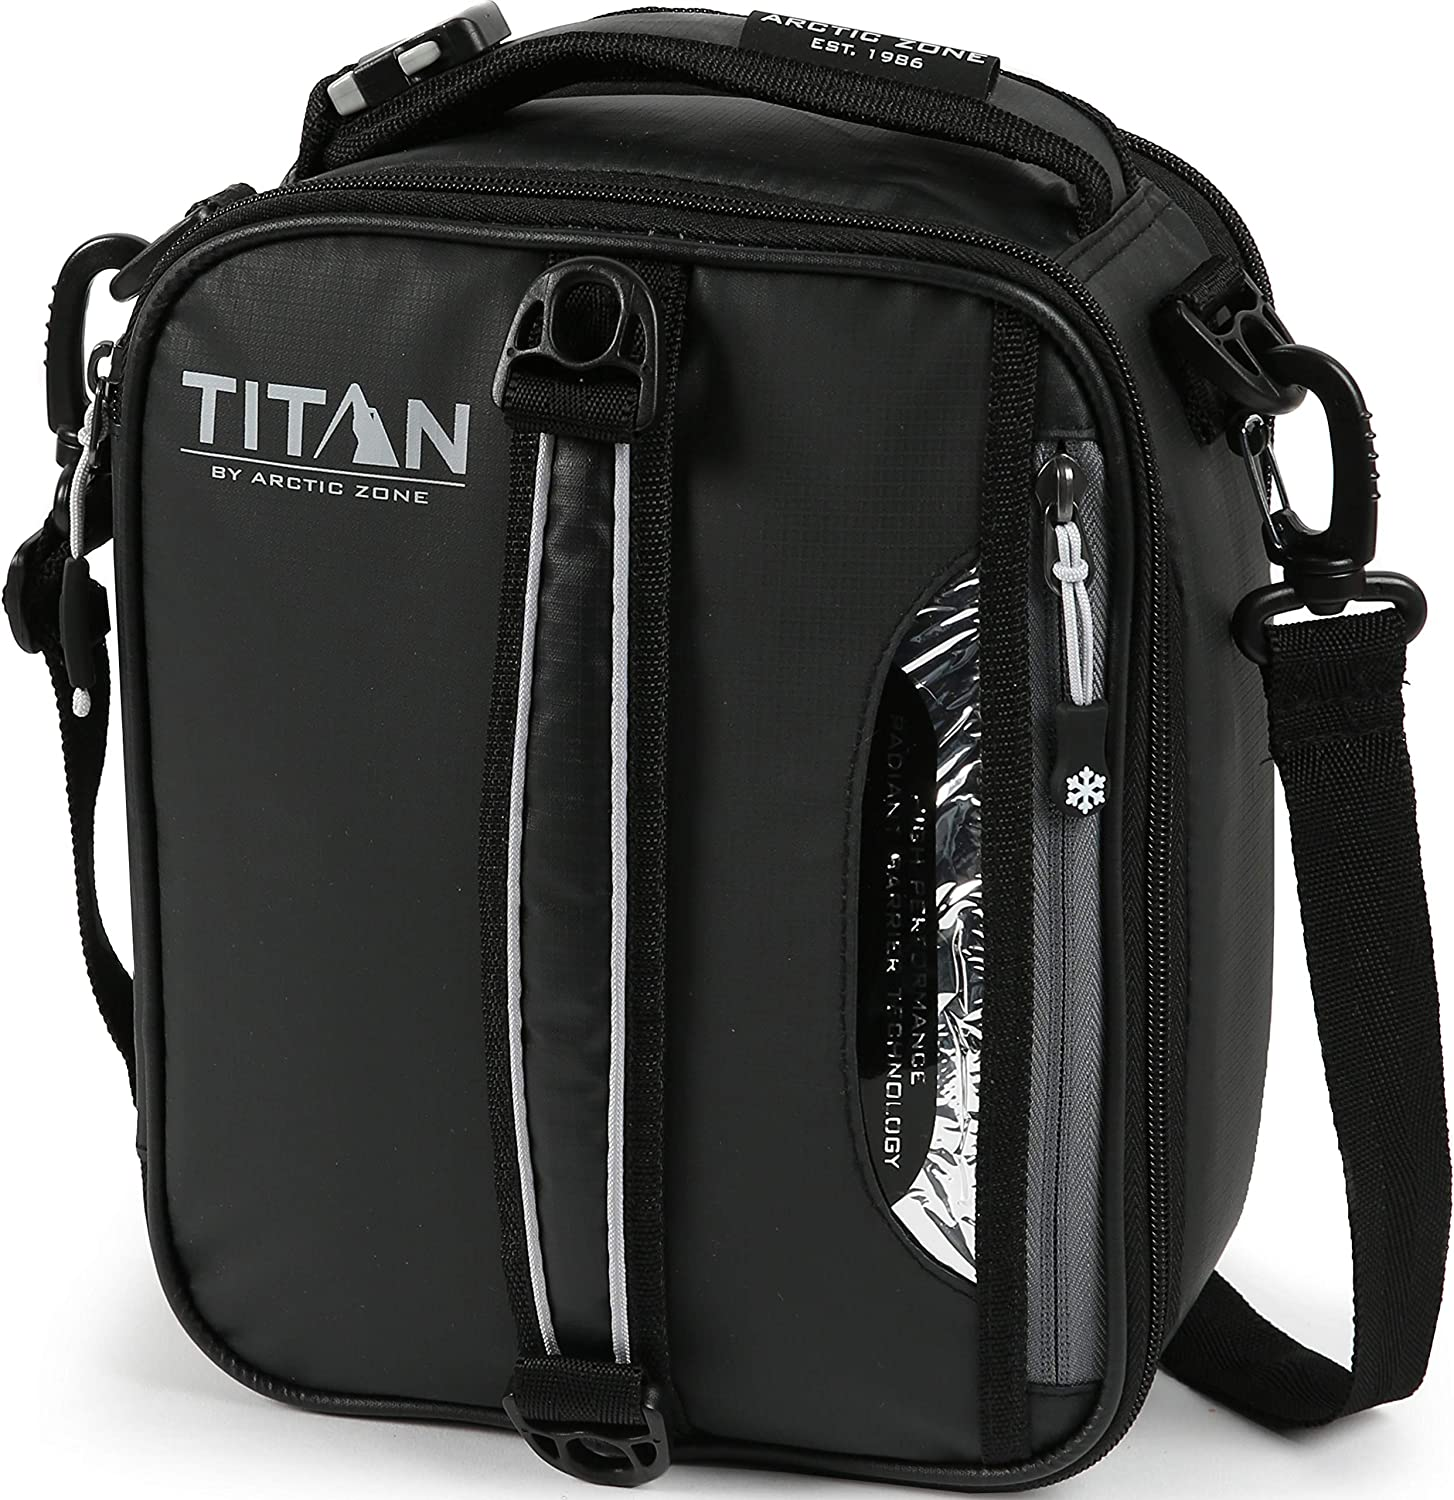 Arctic Zone Titan High Performance Insulated Expandable Lunch Pack, Black